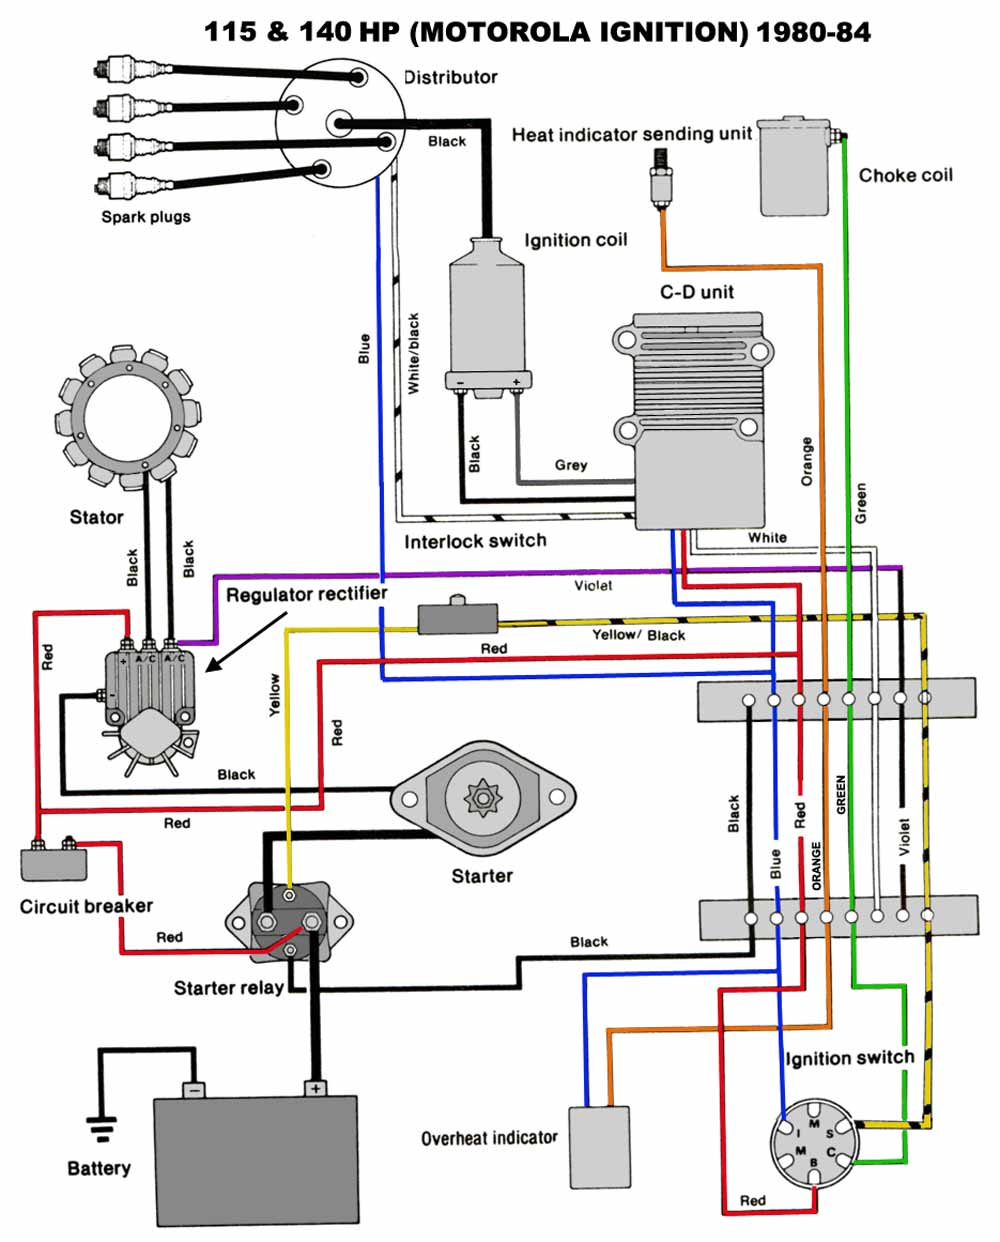 Chrysler Outboard Wiring Diagrams Mastertech Marine Mercury Outboard Parts  Diagram Chrysler 55 Hp Outboard Wiring Diagram